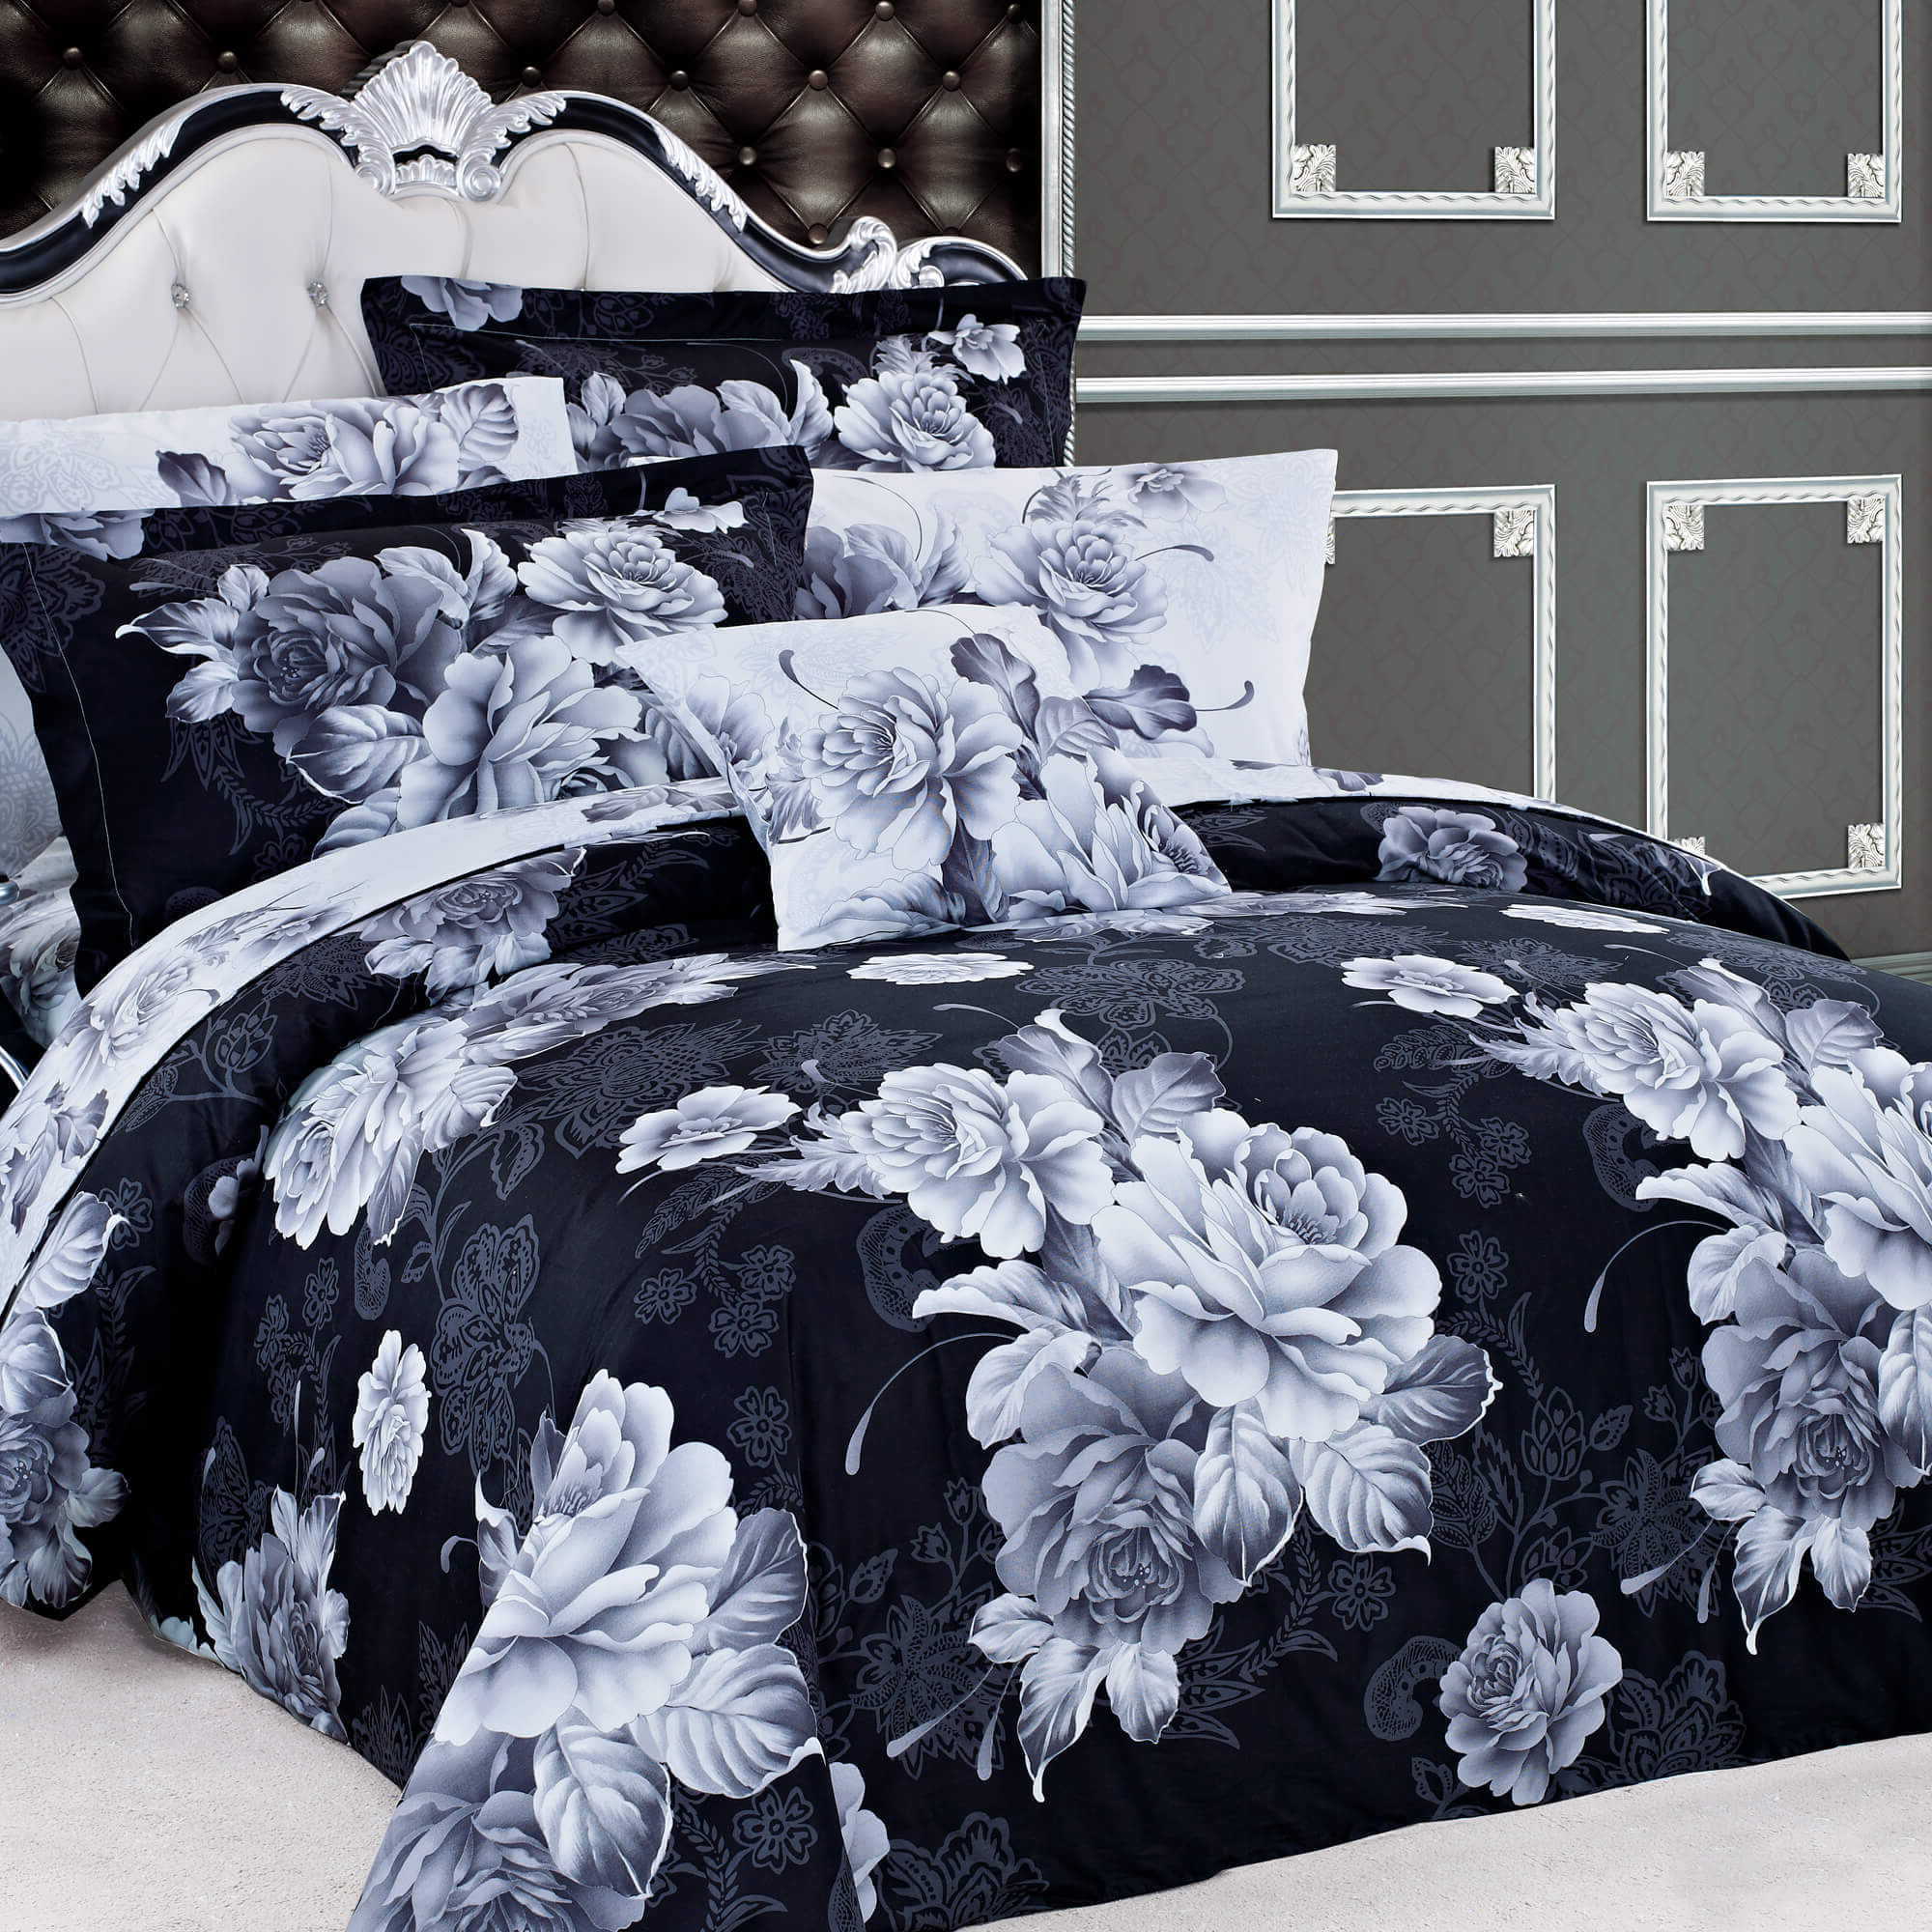 Oakwood Duvet Cover Set